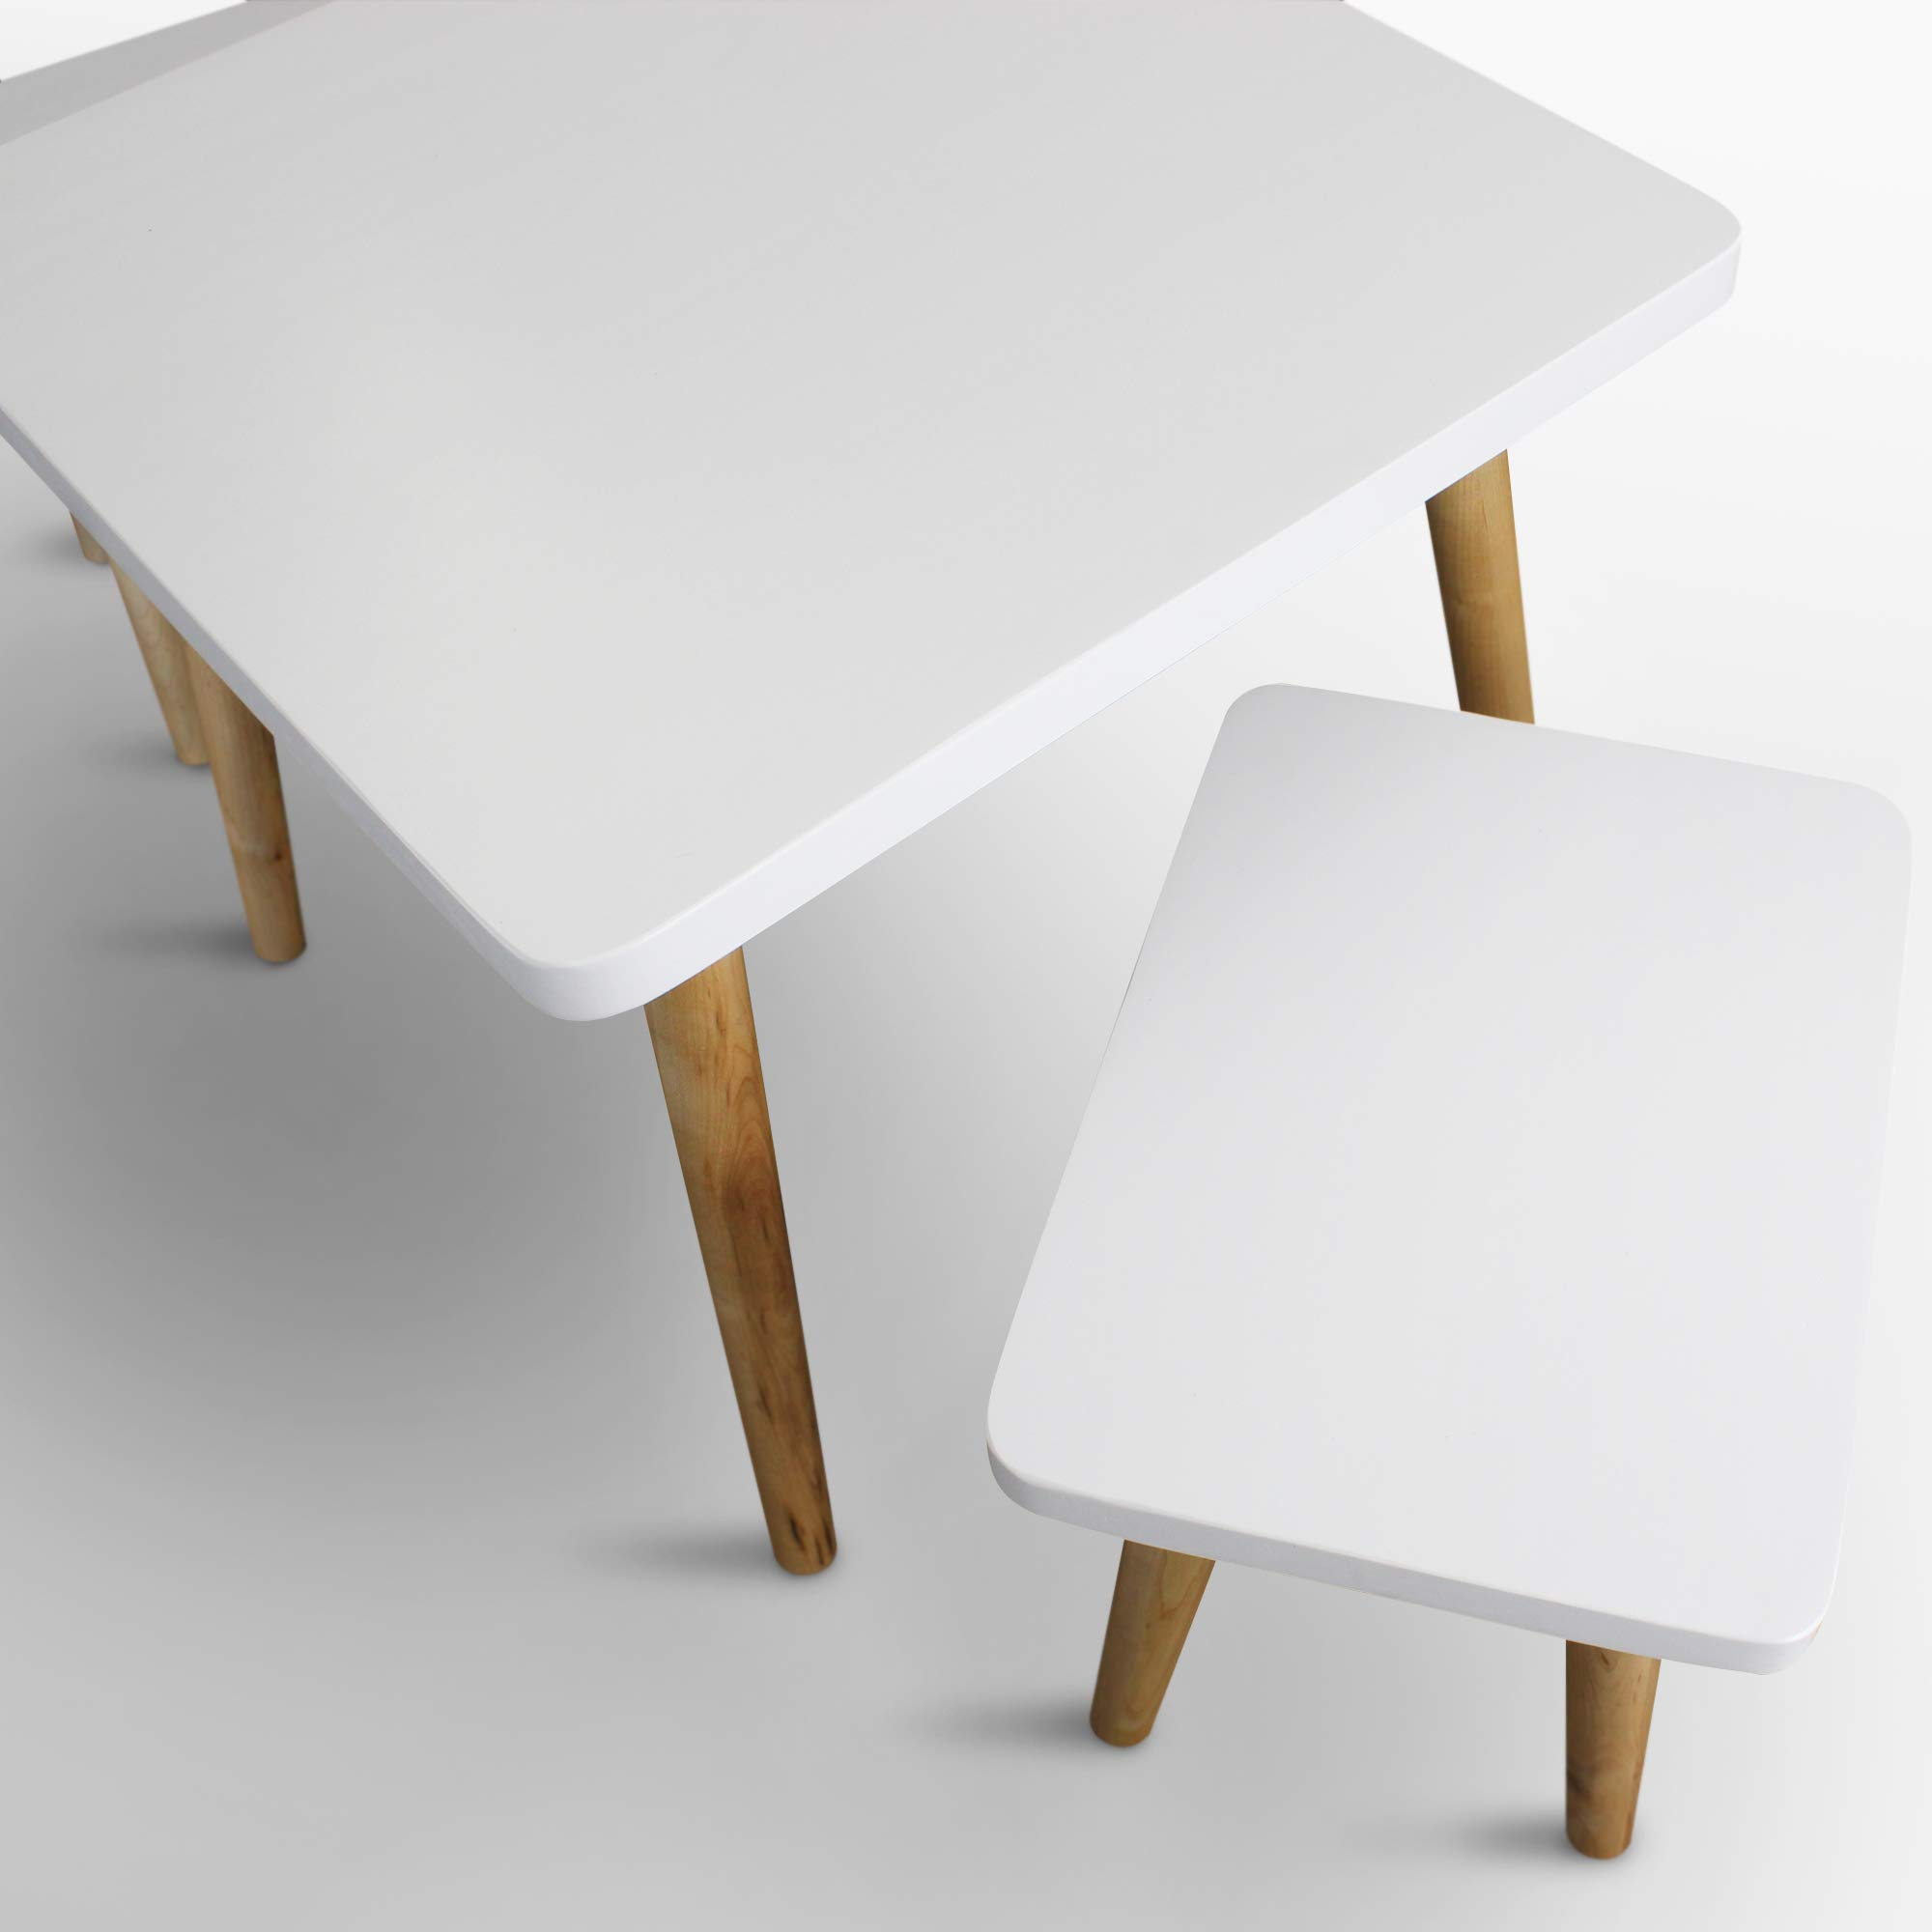 American Trails 560-31 The Easel Table & Chair Set Kid Table, Two-Tone (White, Natural) by American Trails (Image #9)